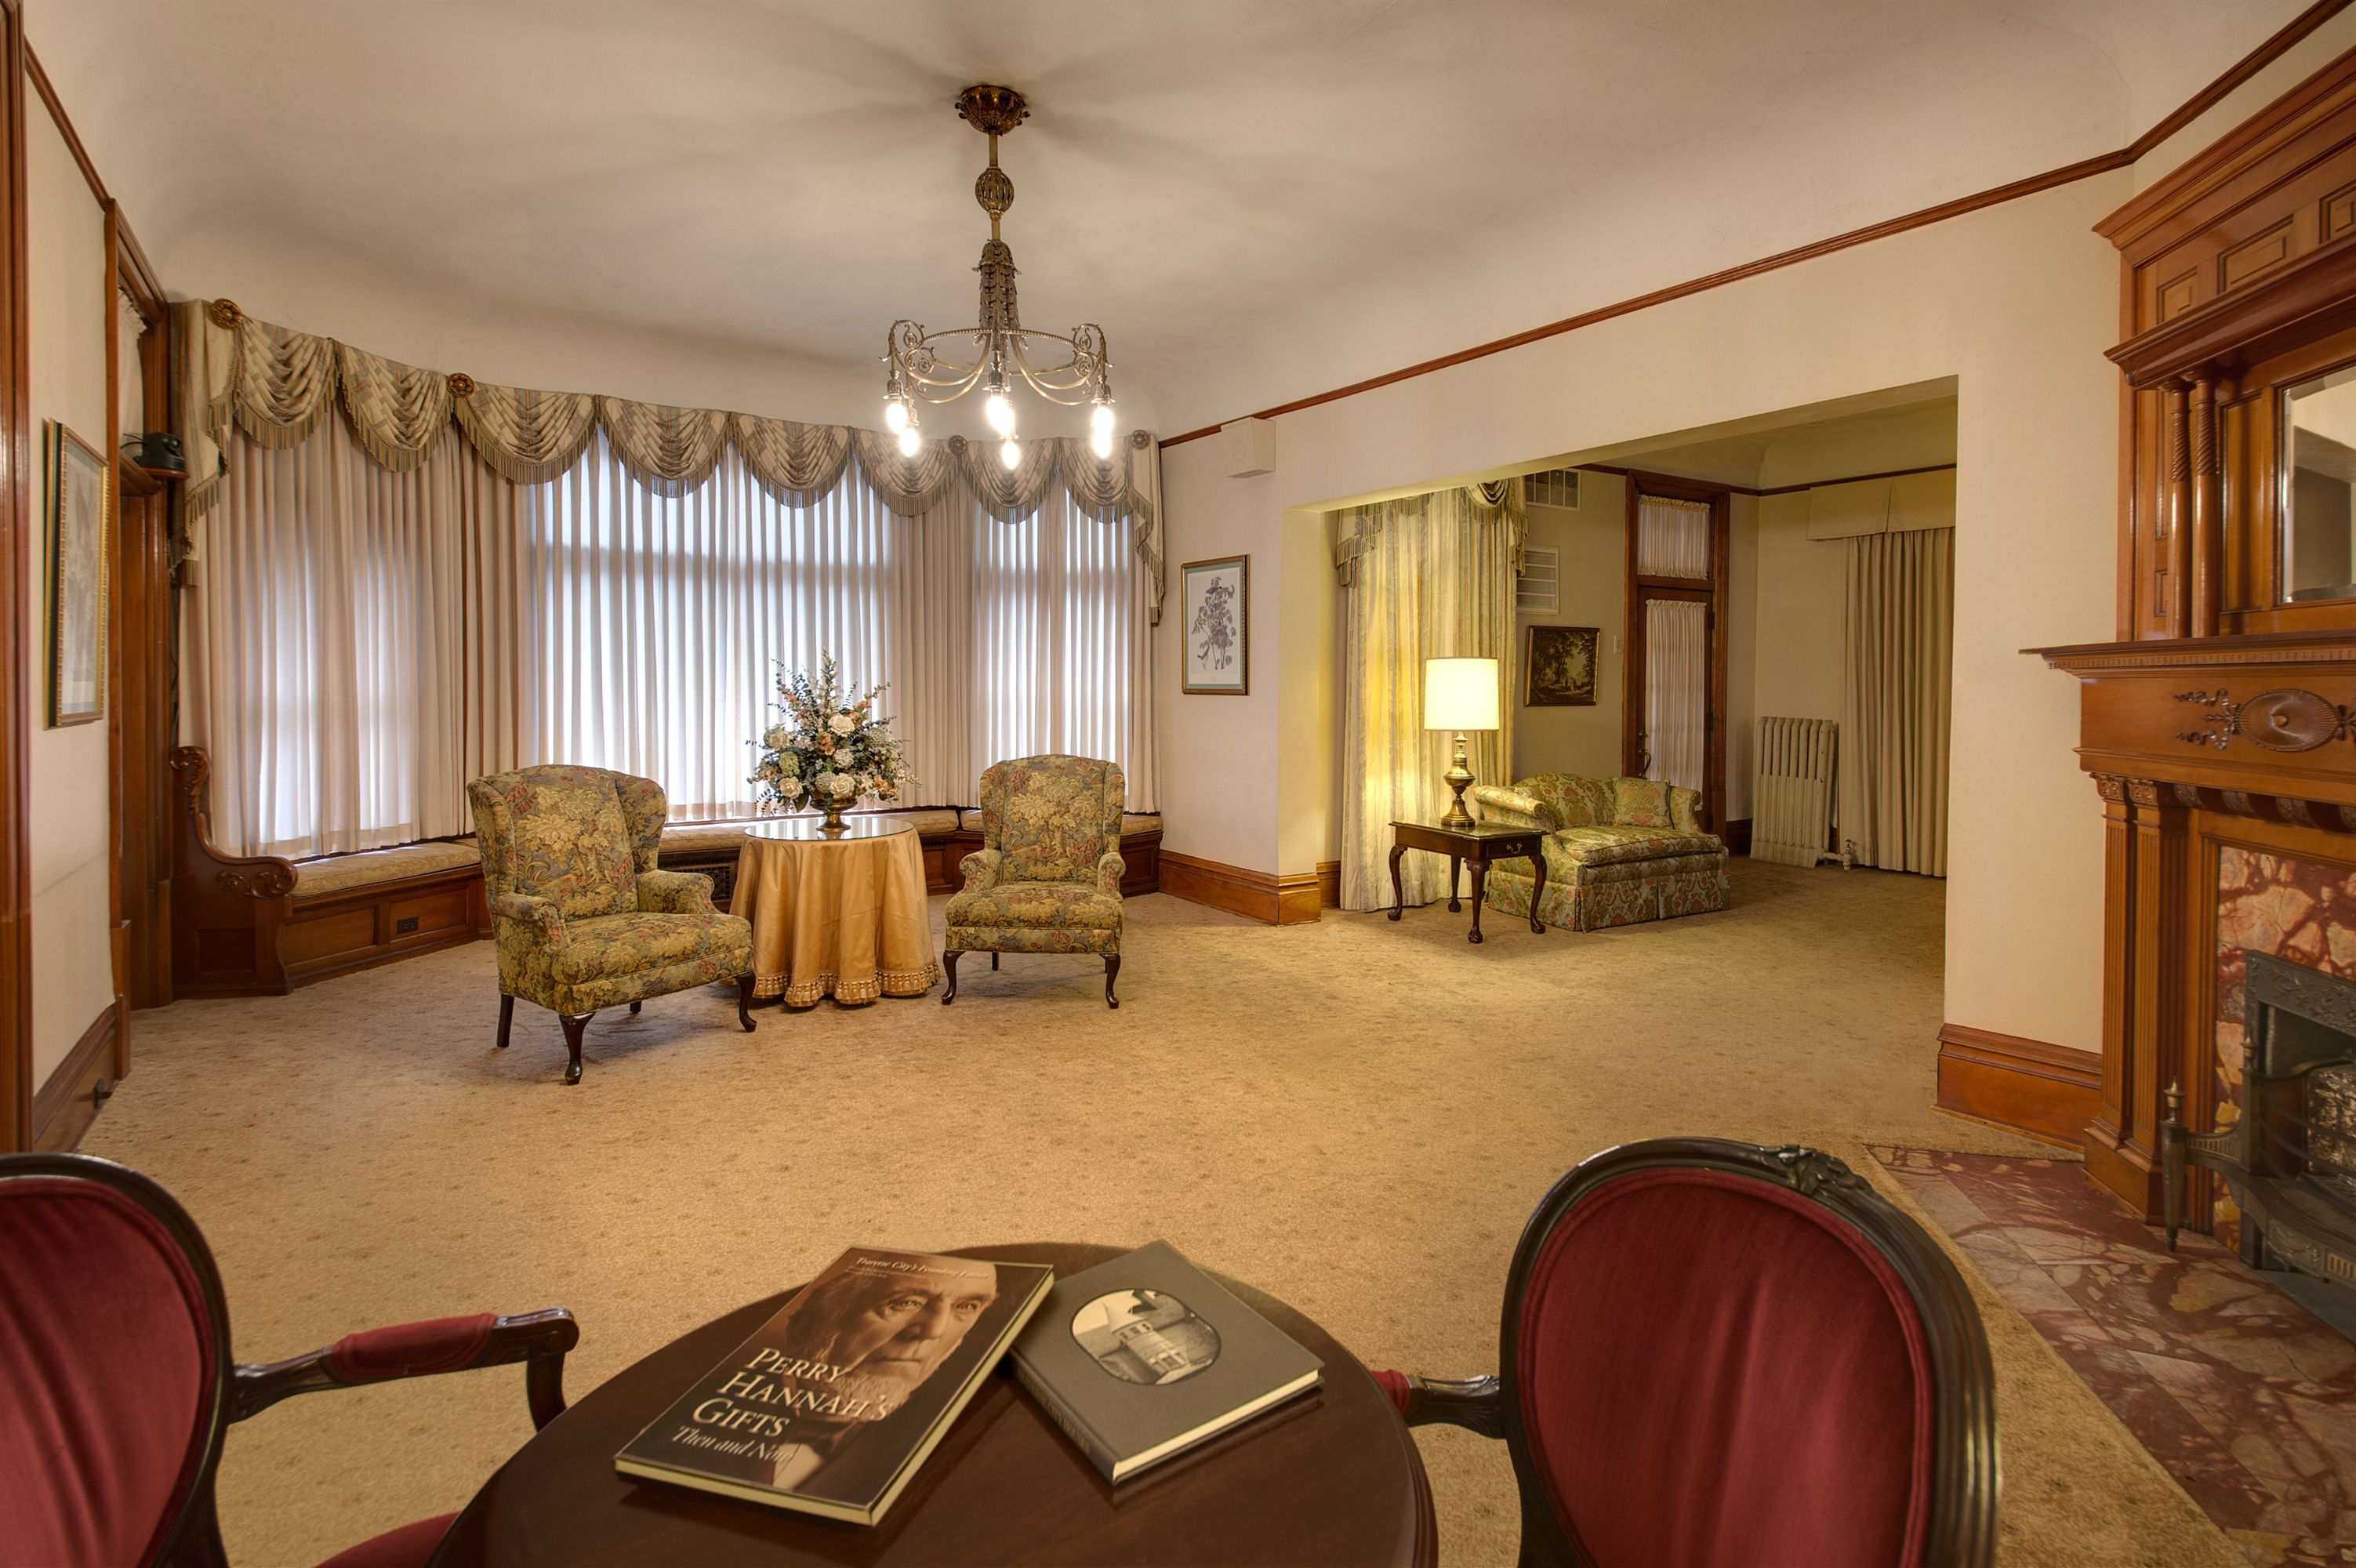 Facilities & Directions | Reynolds-Jonkhoff Funeral Home, MI